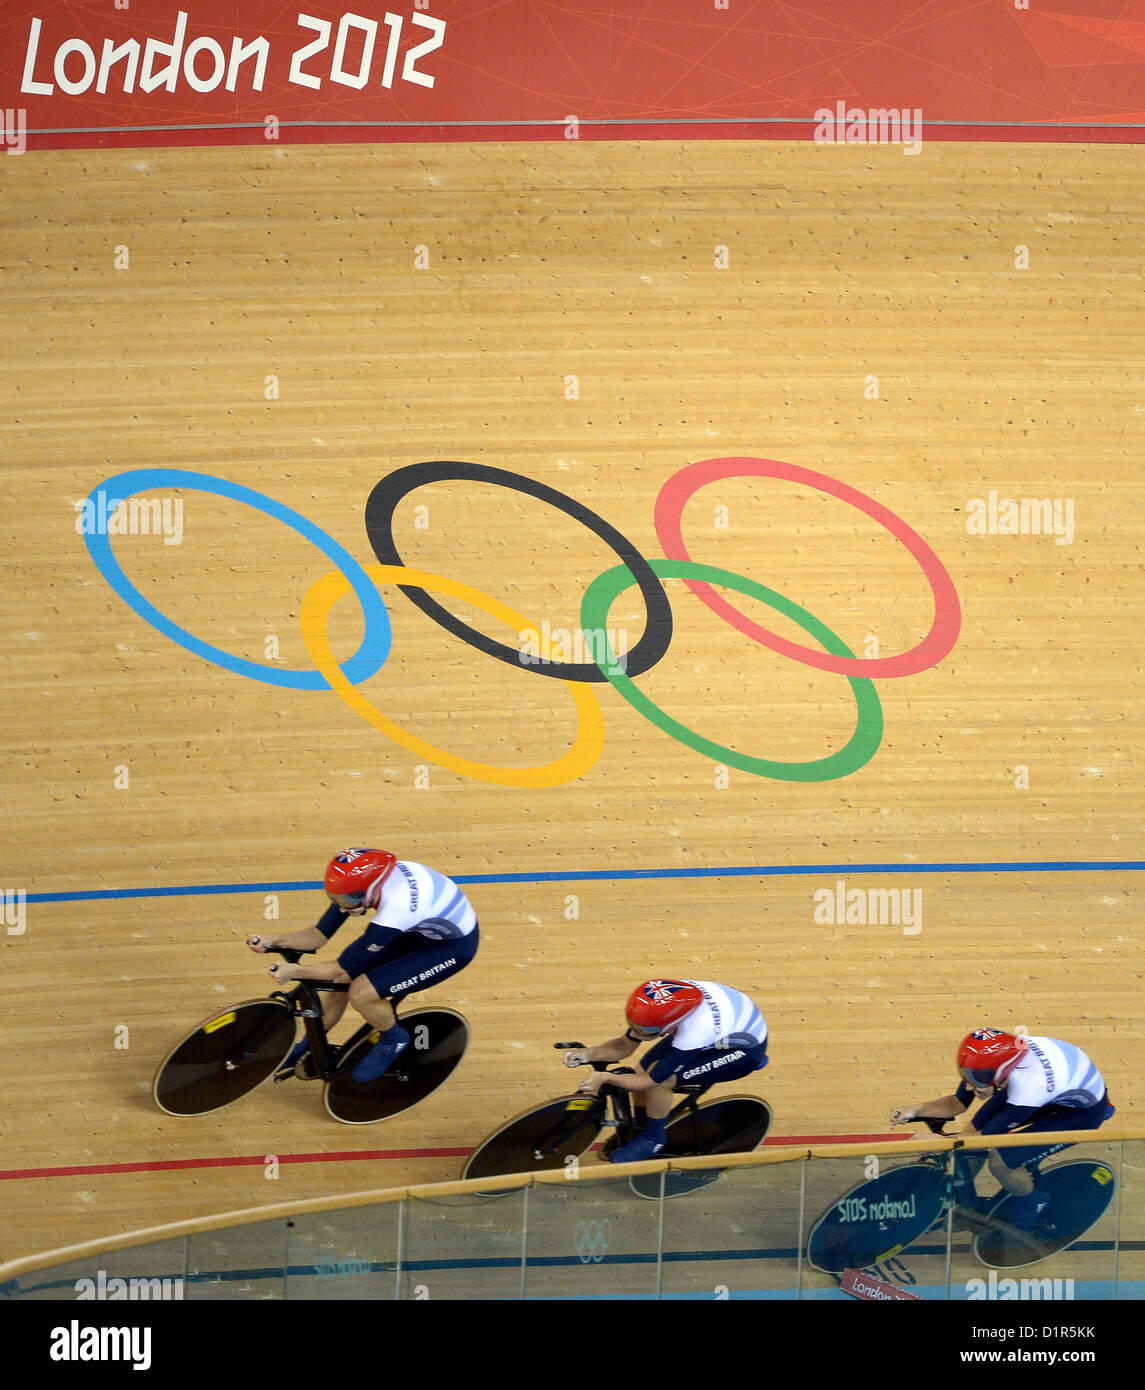 The Team GB Pursuit team go past the Olympic rings. Olympic rings on the track. Track Cycling - Stock Image